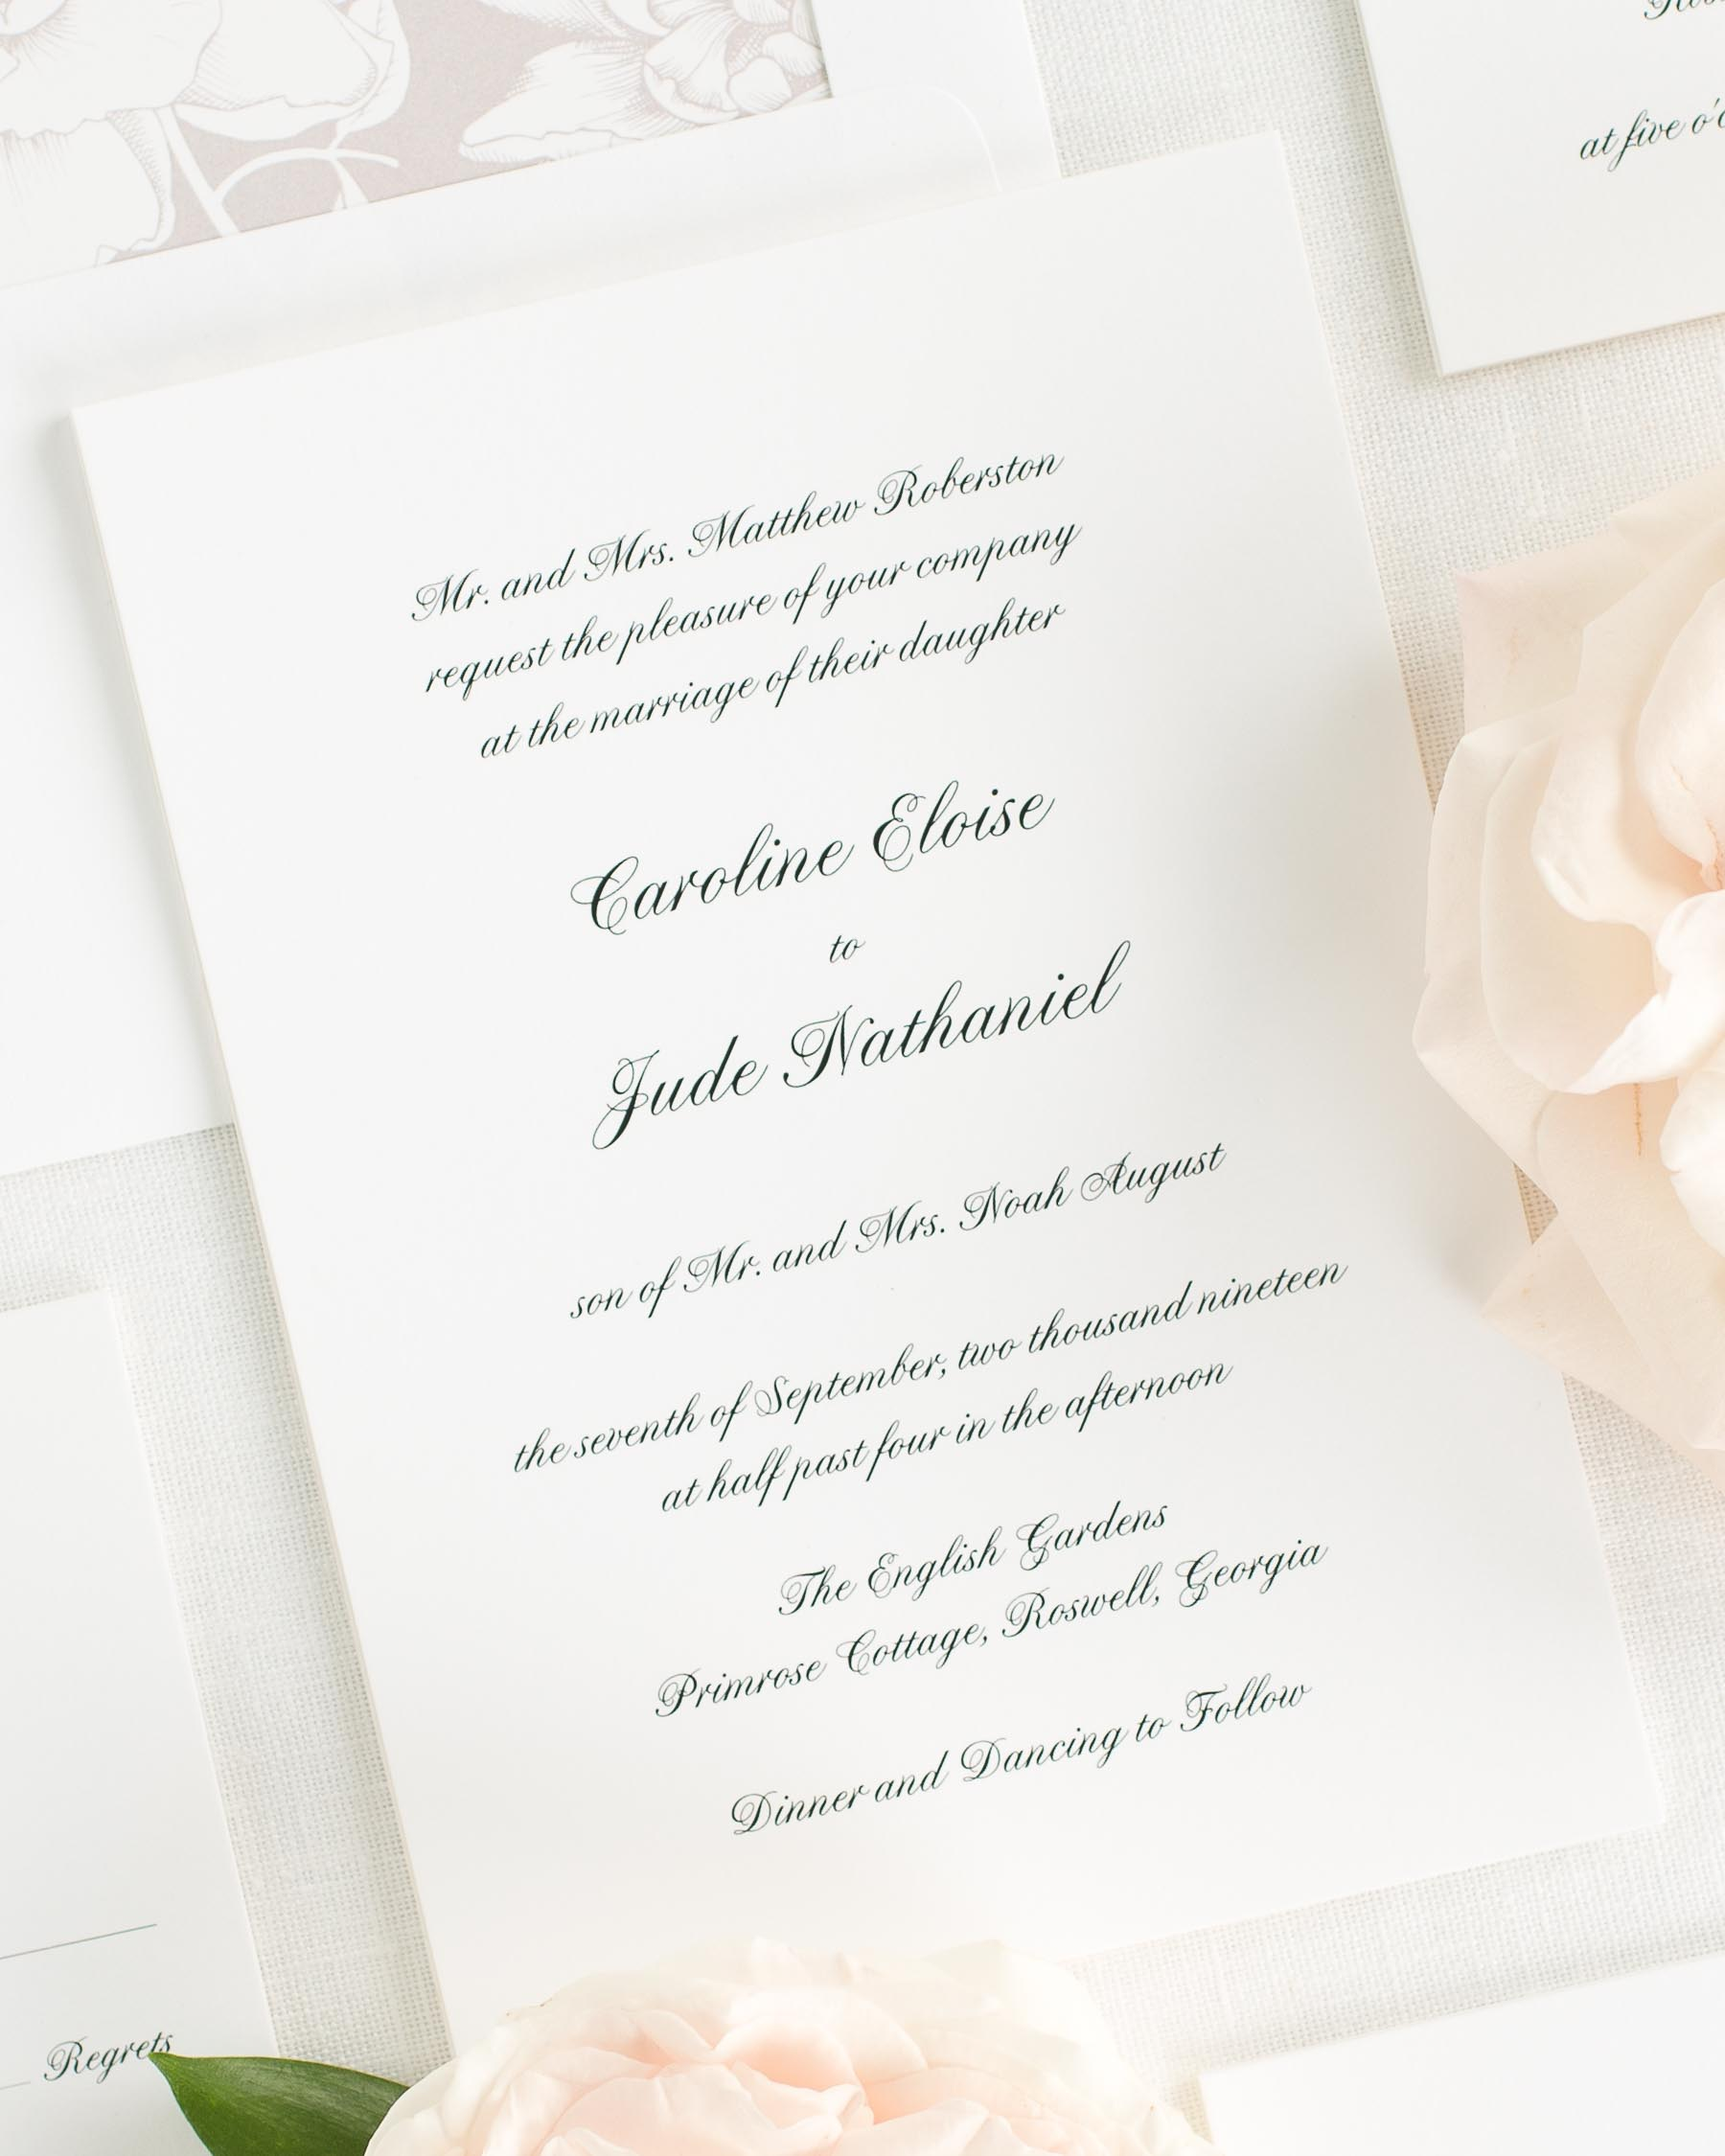 Caroline Wedding Invitations